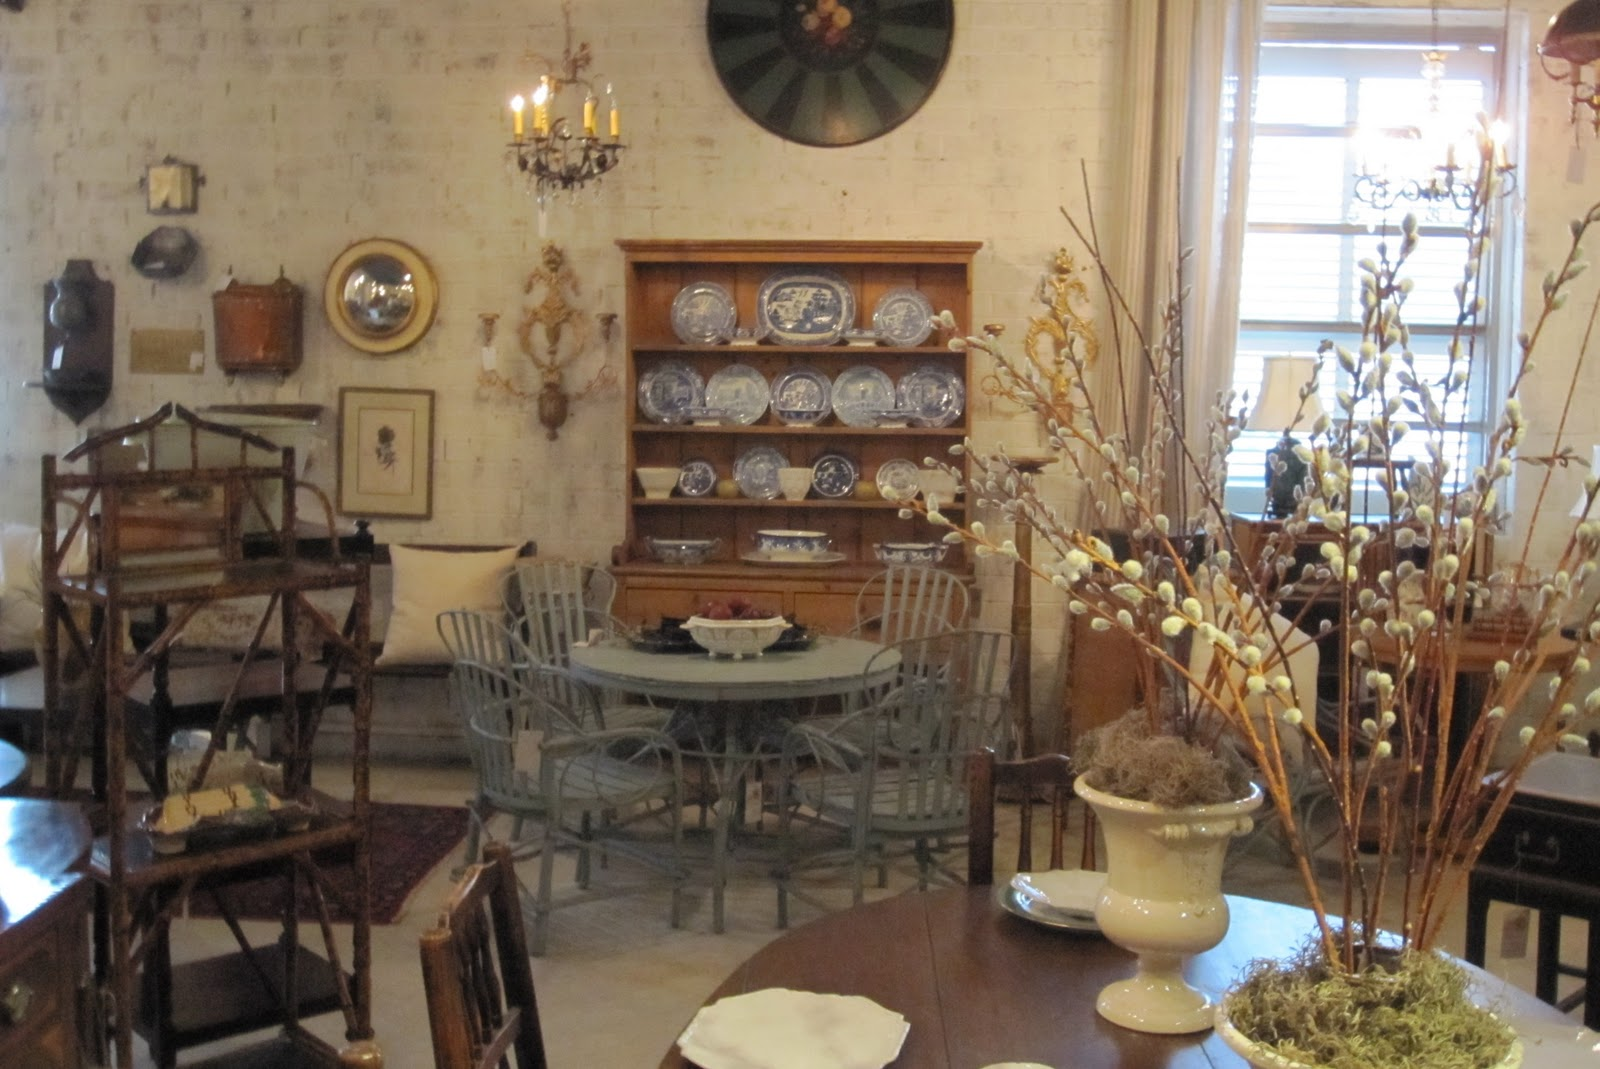 The Year Round Showroom In Greensboro Has Been A Go To Resource For Thirty Years Antique Dealers Their Market Square Is Worthy Of Your